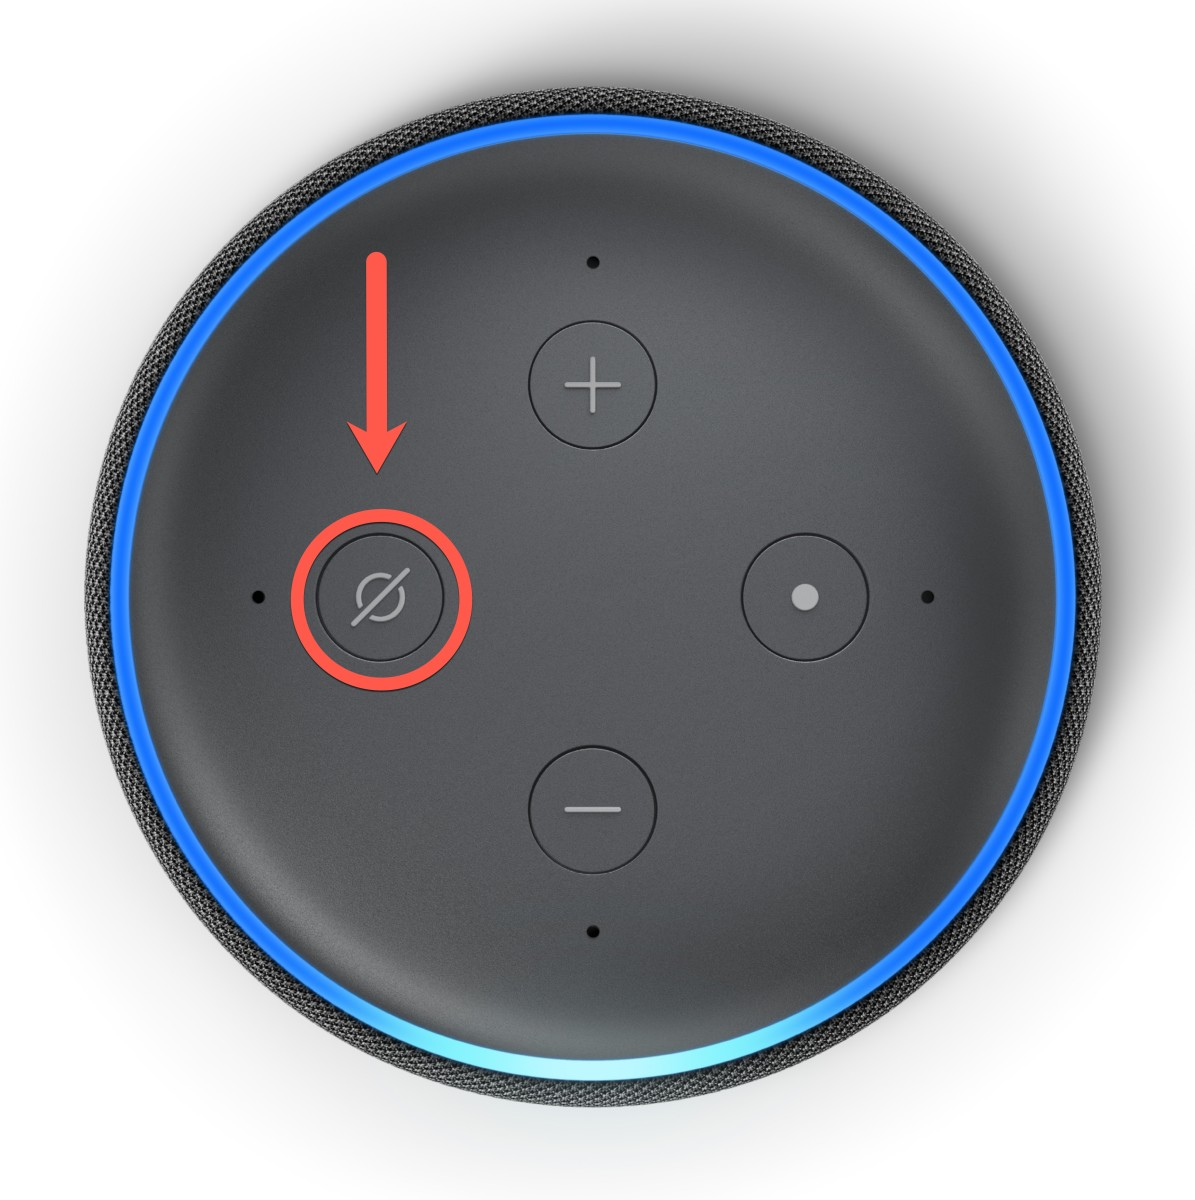 Press the mute button for the mic to stop Alexa listening to your conversations